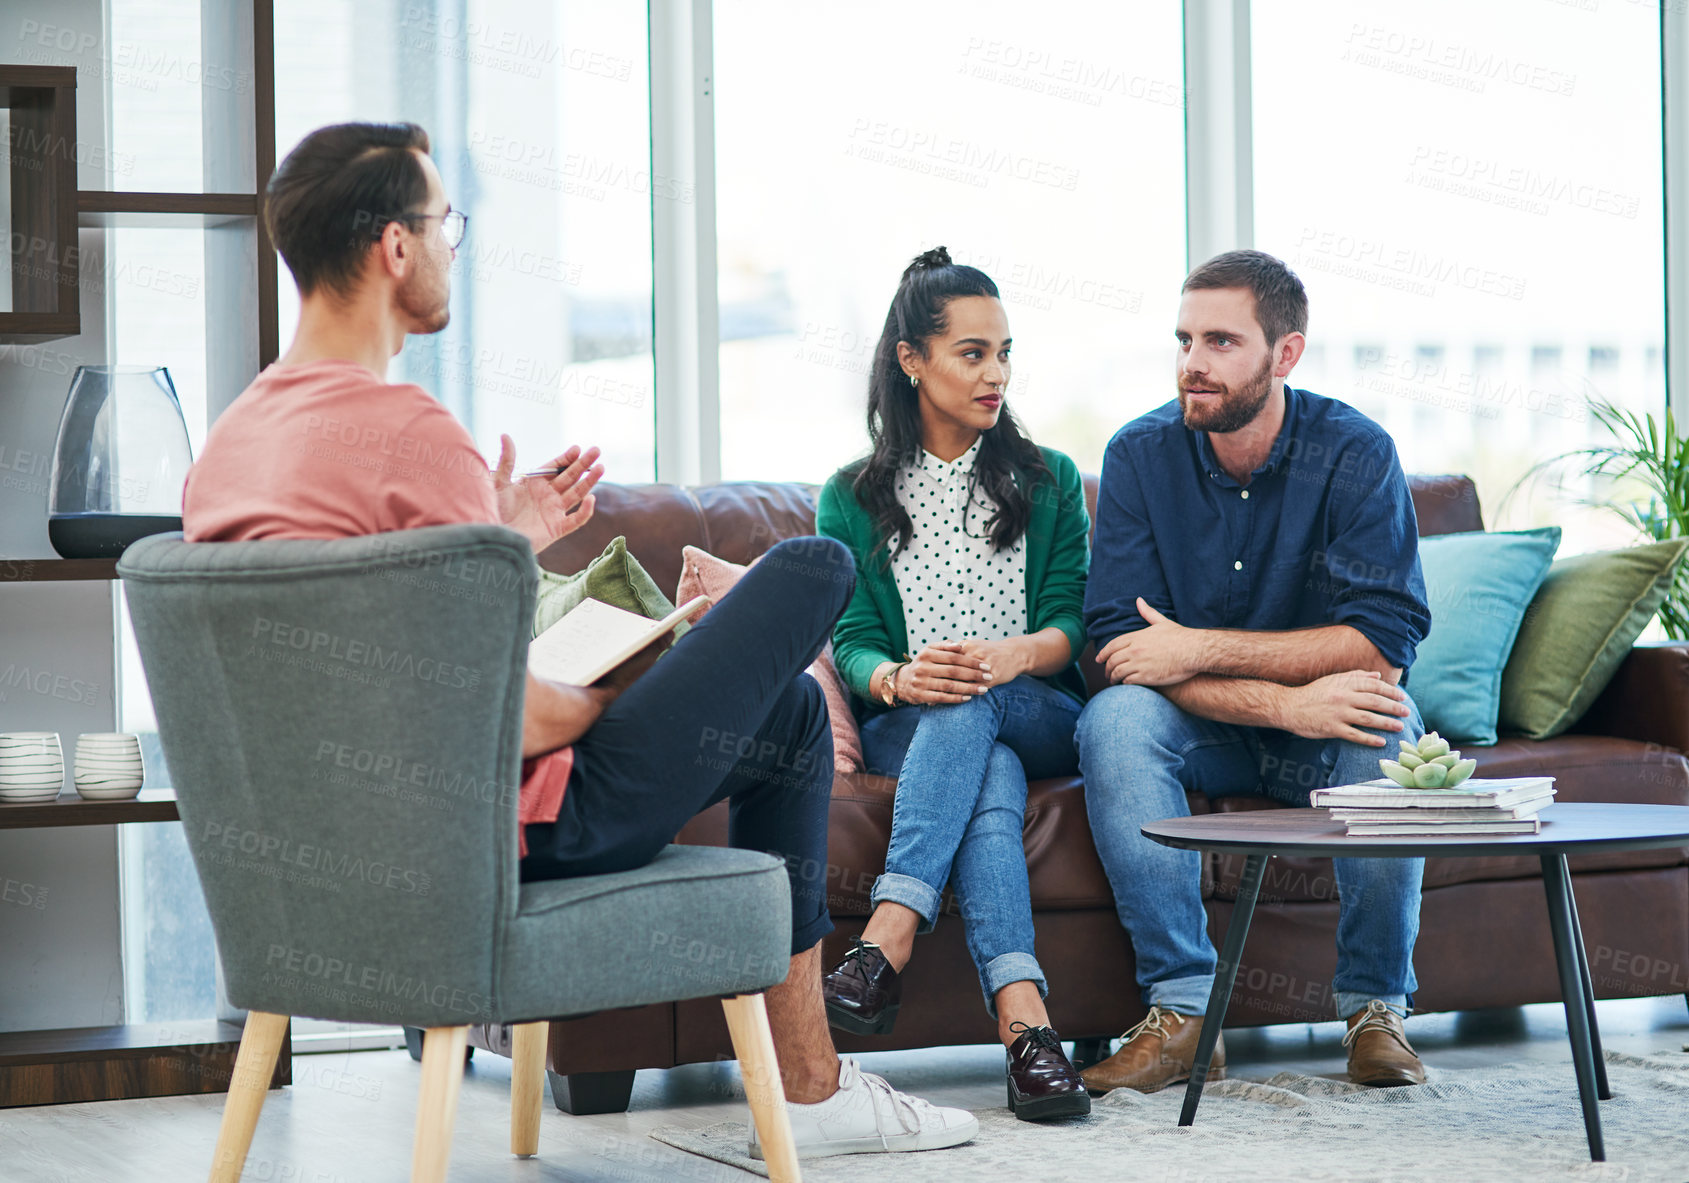 Buy stock photo Shot of two young men and a woman having a discussion in a modern office